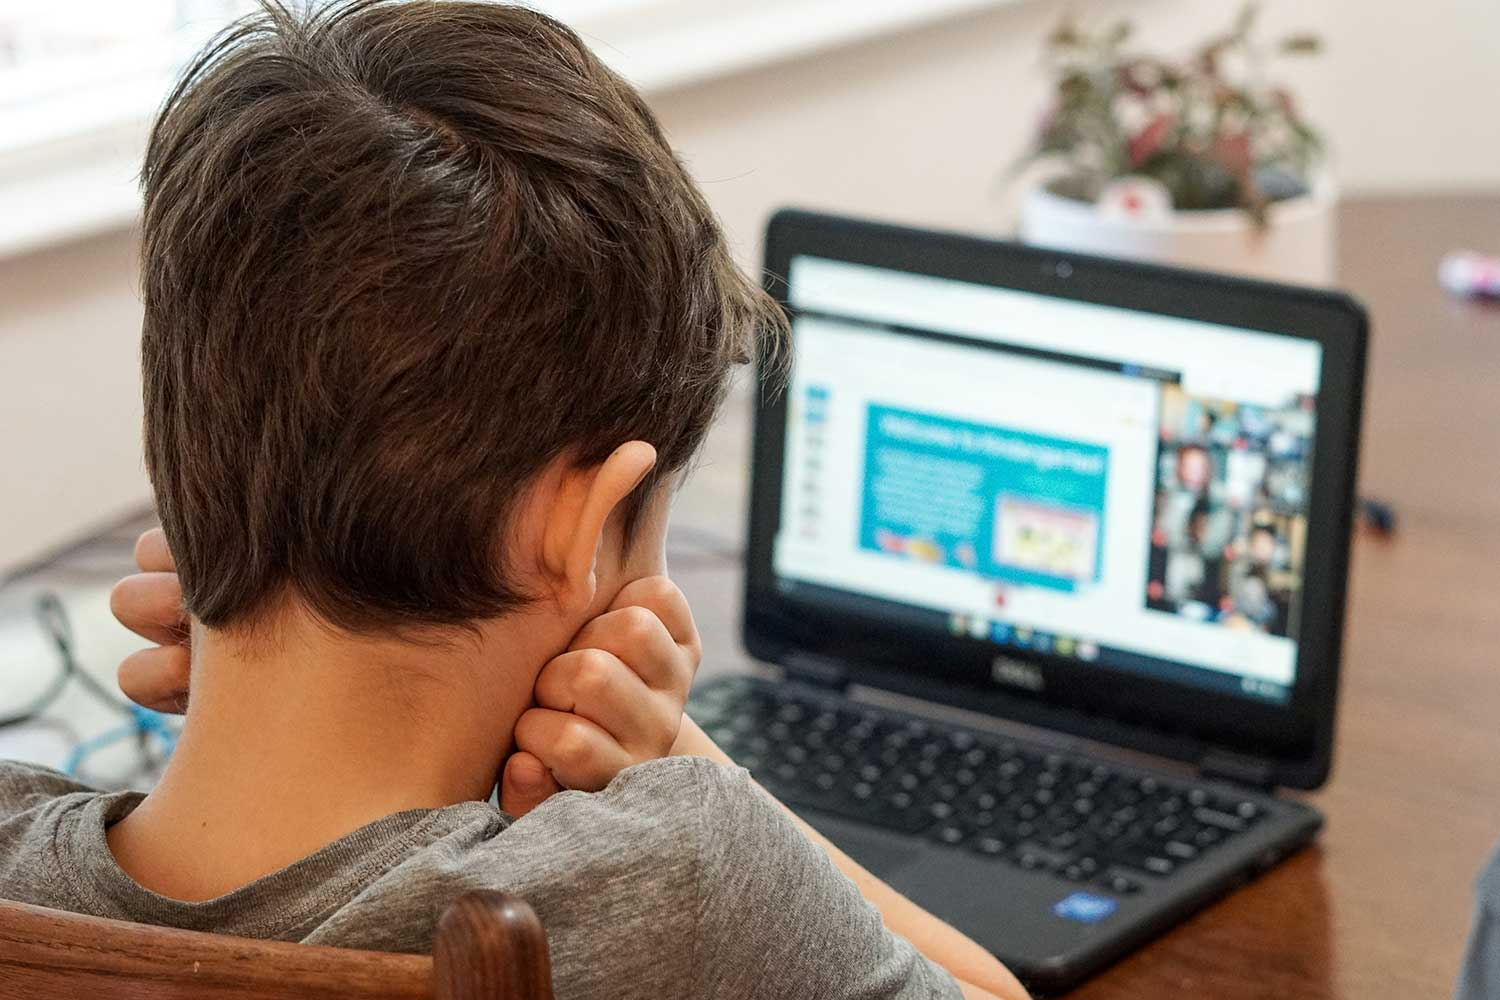 boy with hands on cheeks looking at computer screen